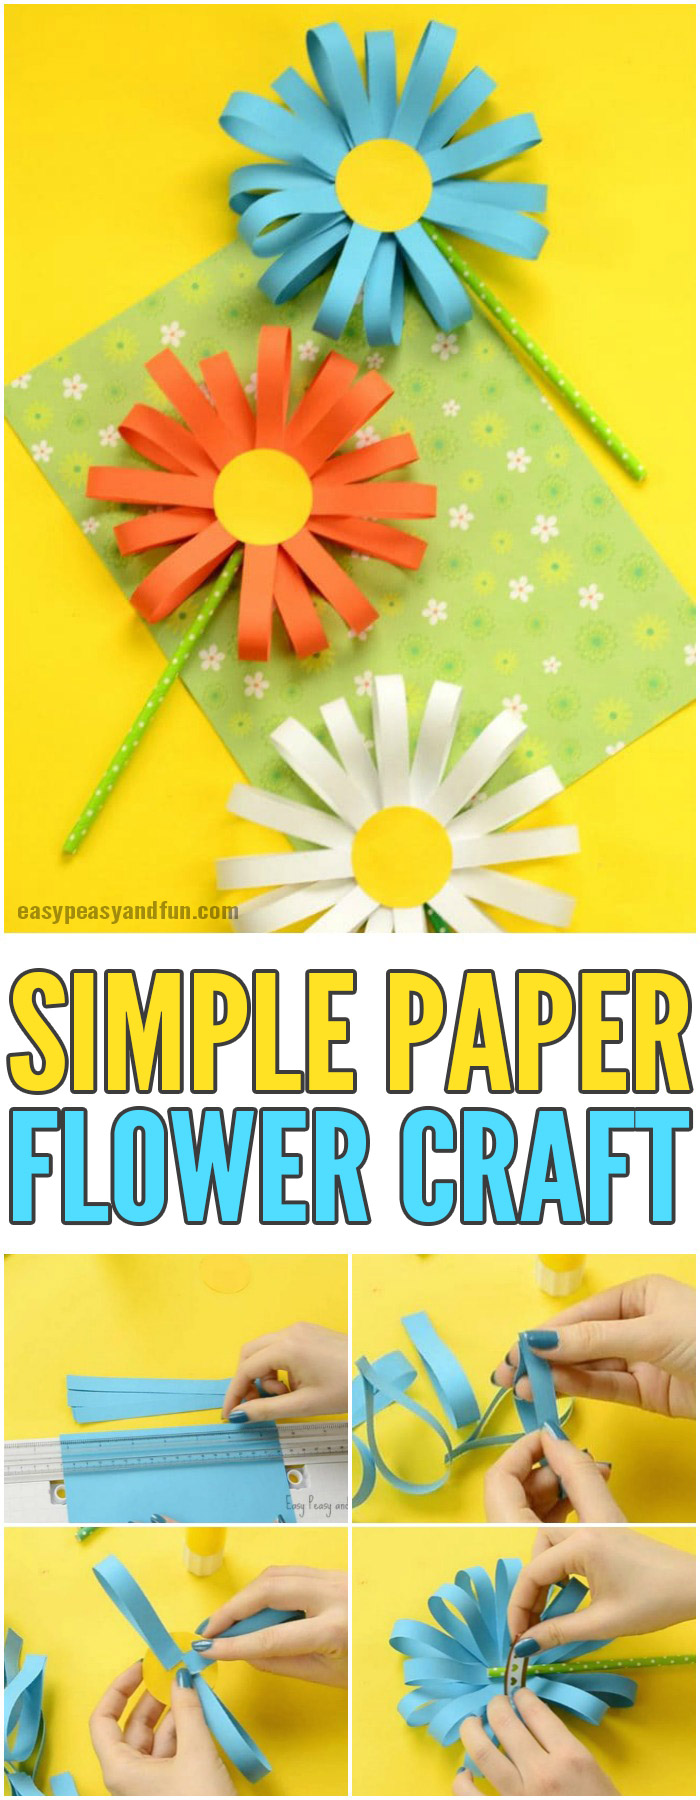 Paper flower craft easy peasy and fun simple paper flower craft for kids craftsforkids activitiesforkids papercrafts izmirmasajfo